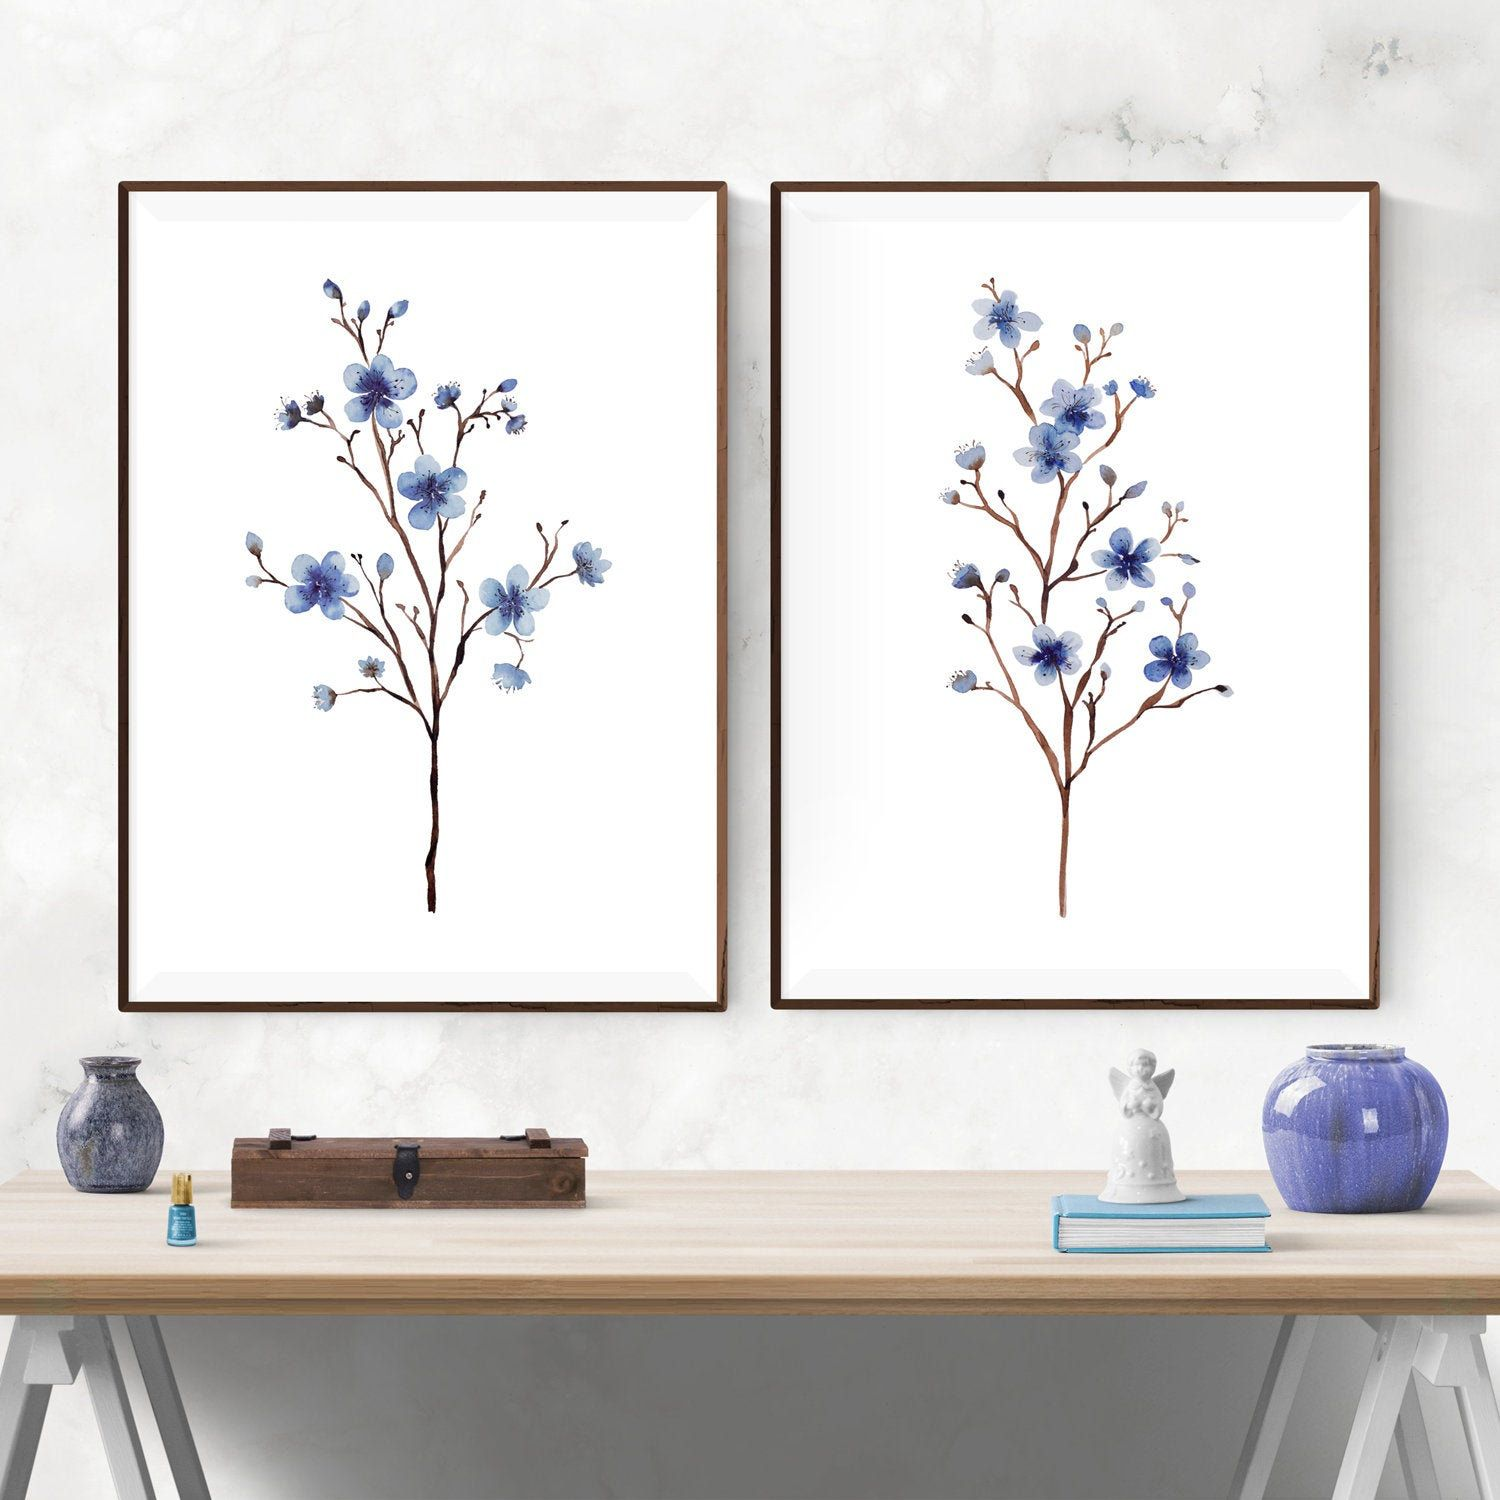 Navy Blue Flower Printable Wall Art Cherry Blossom Watercolor Etsy In 2021 Printable Wall Art Wall Printables Wall Art Decor Living Room